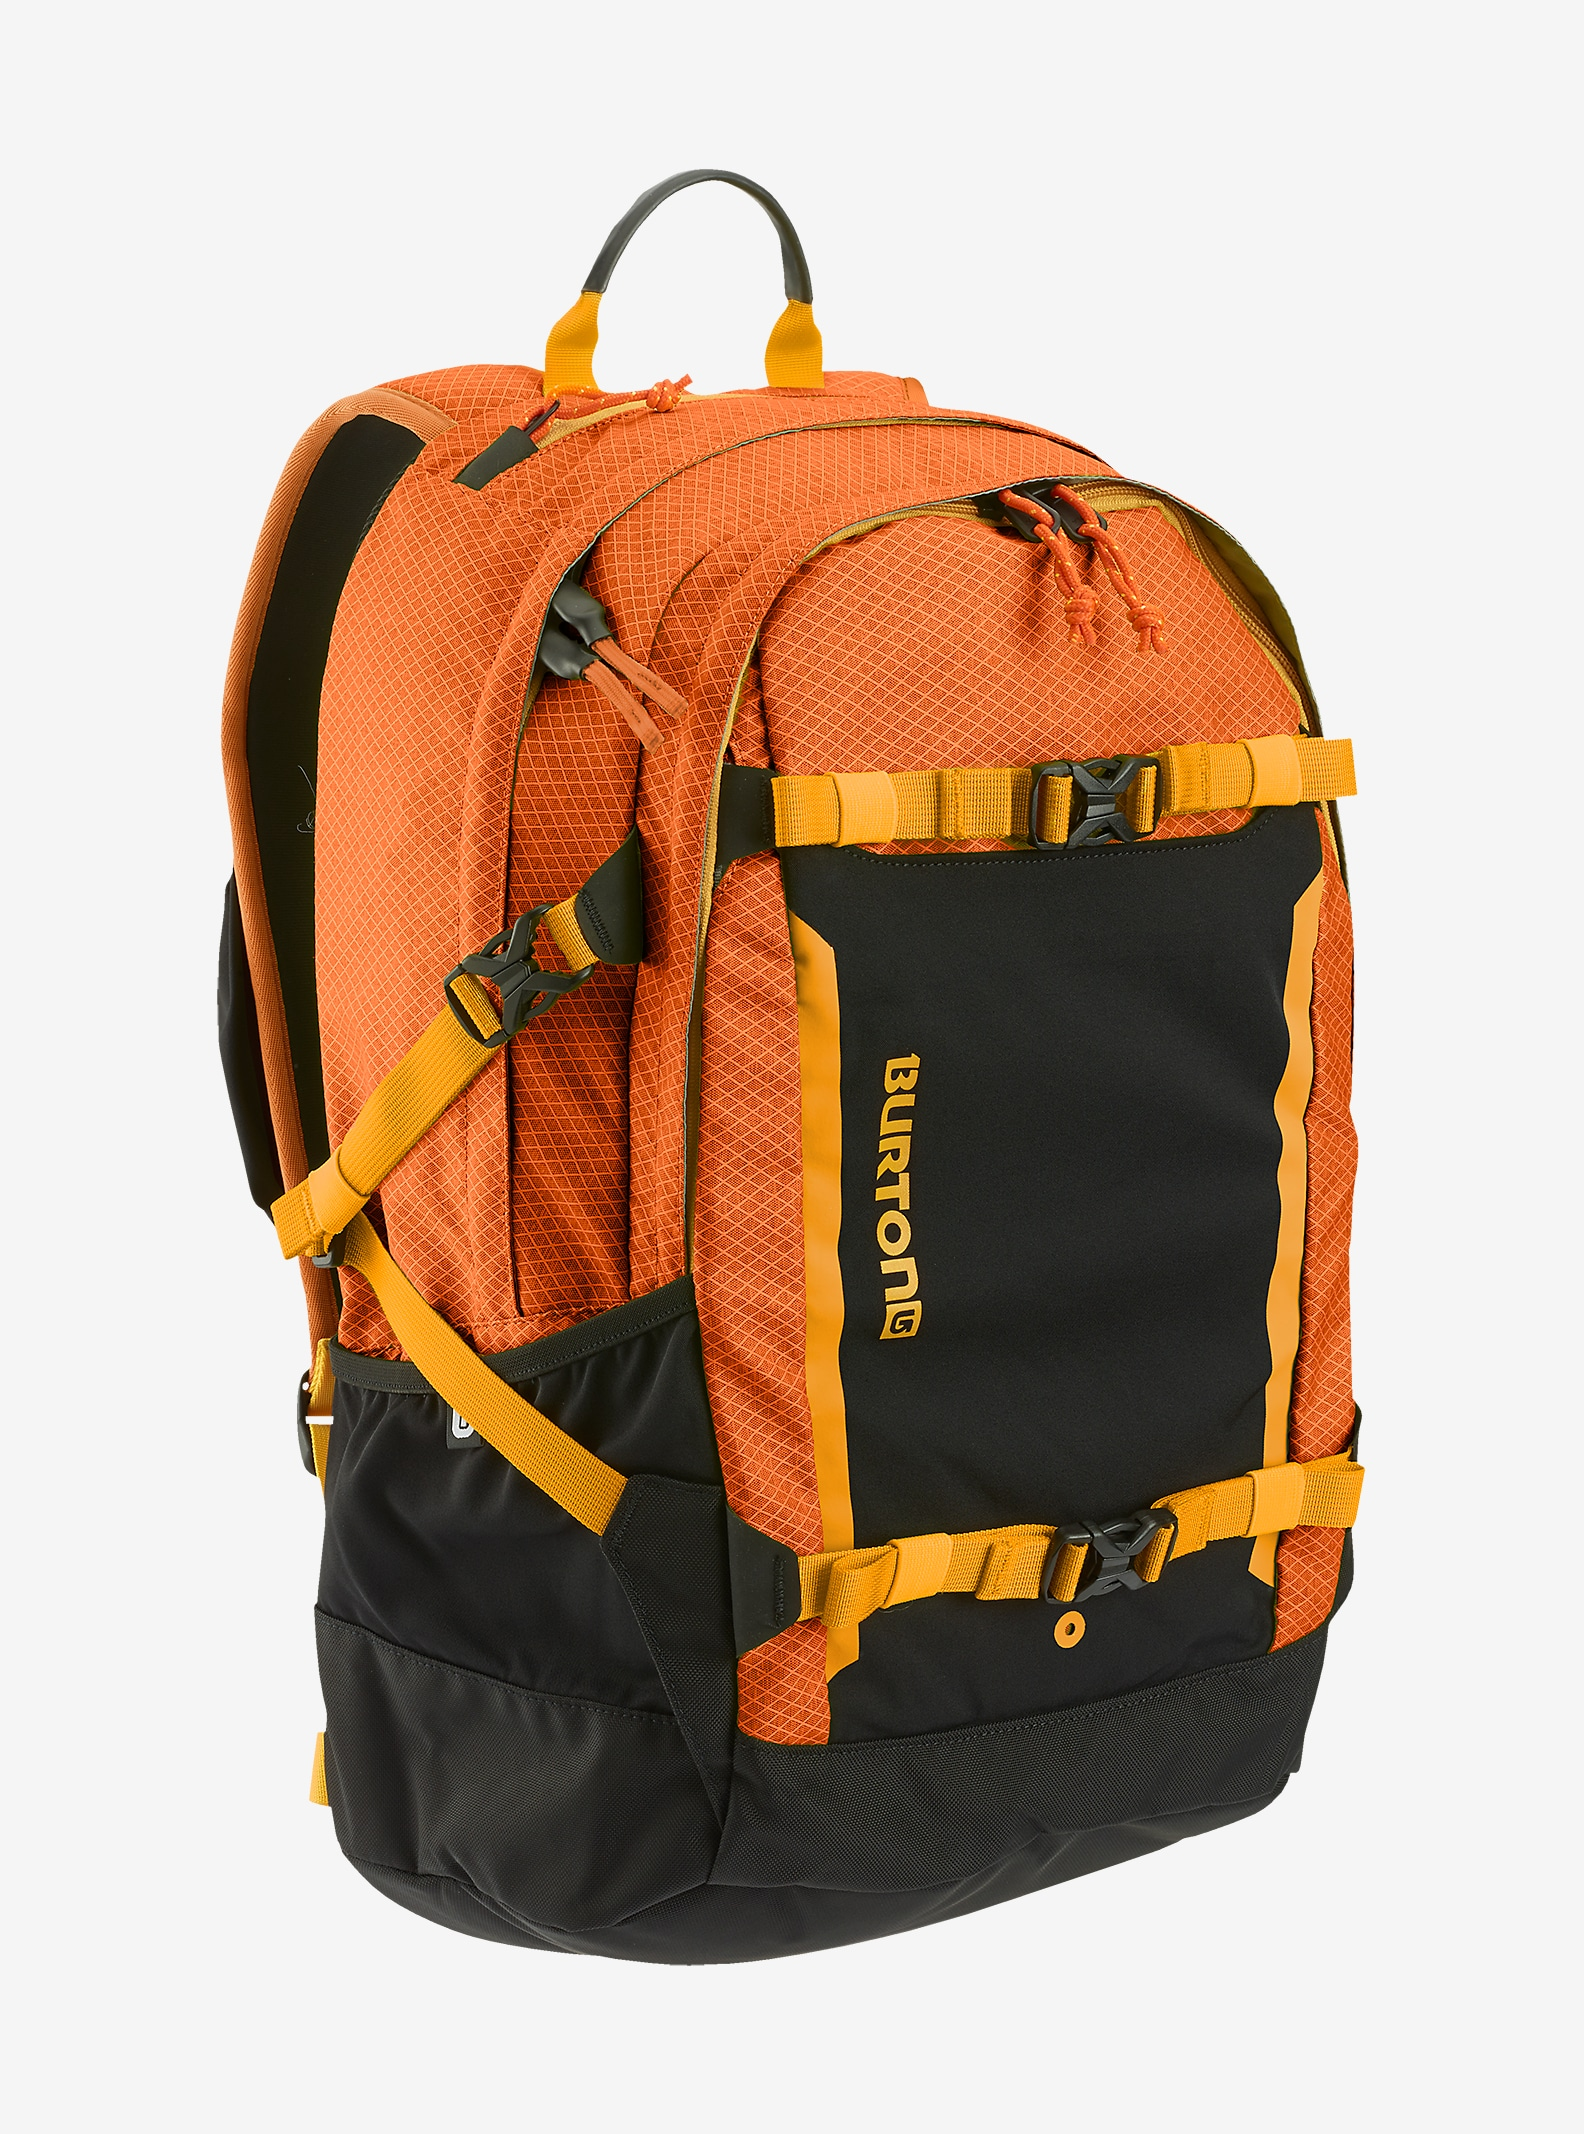 Burton Day Hiker Pro 28L Backpack shown in Burnt Orange Ripstop [bluesign® Approved Fabric]